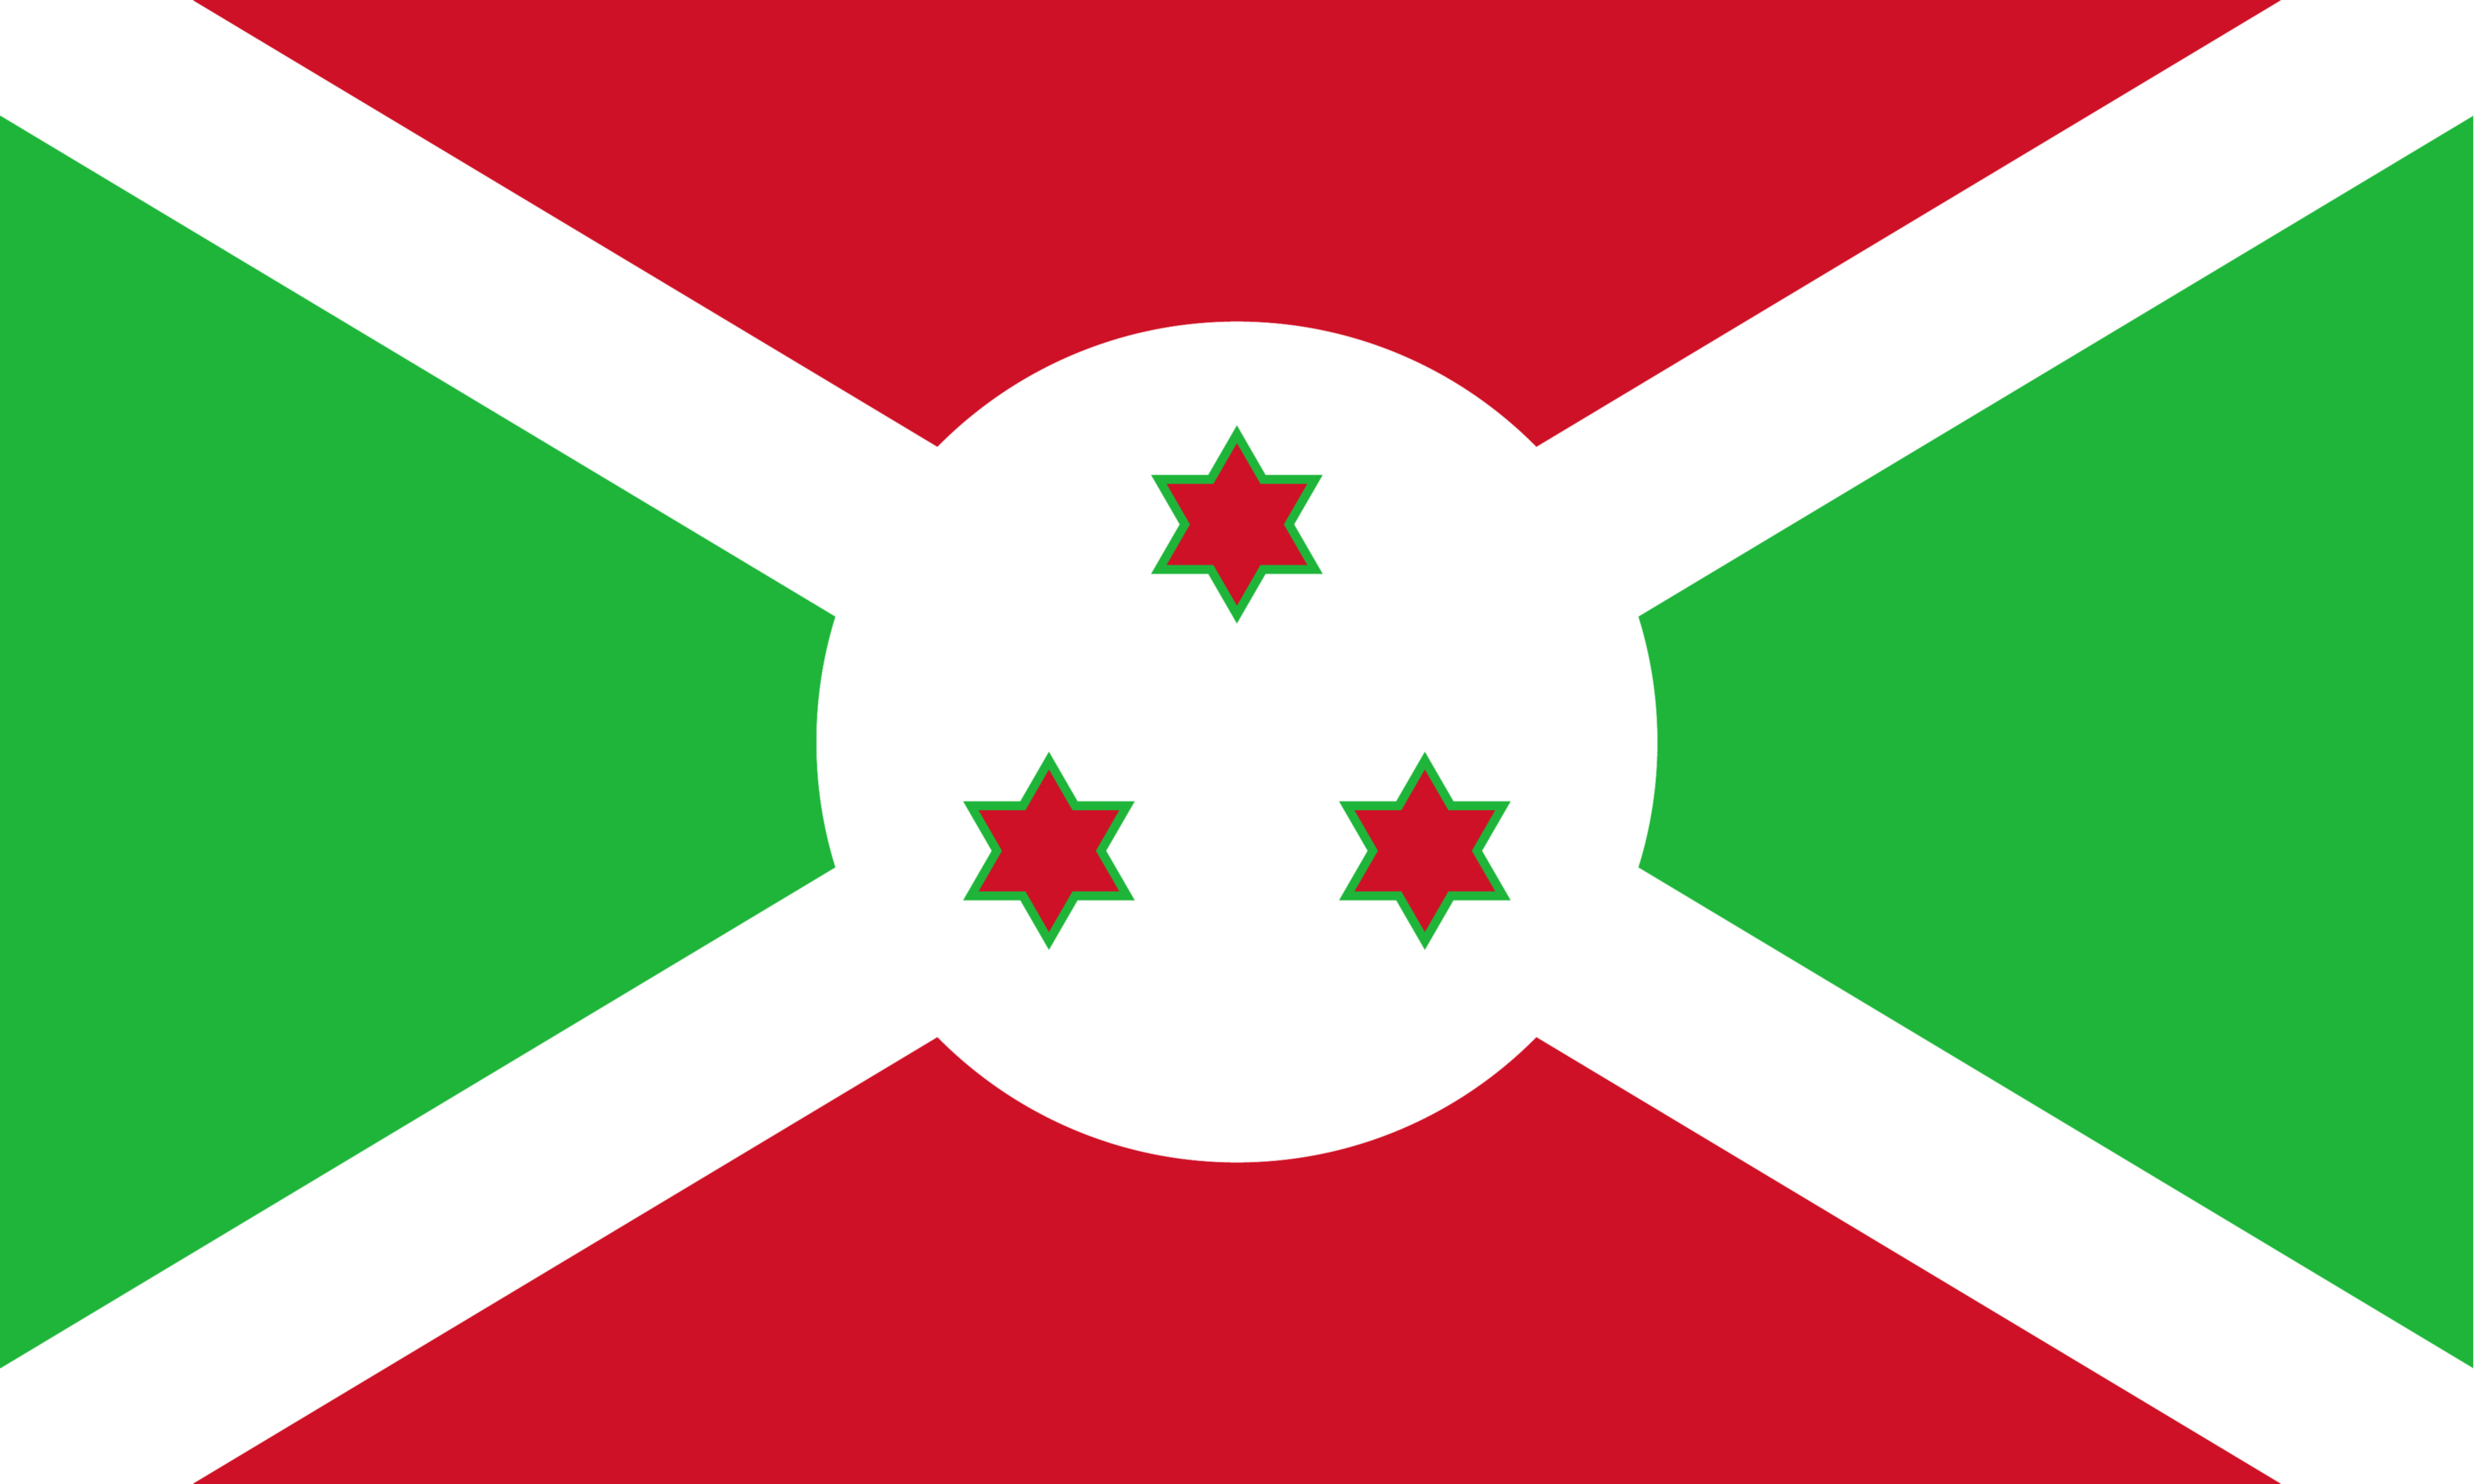 The National Flag of Burundi featuring the red, green and white colors designed on a horizontal rectangle.